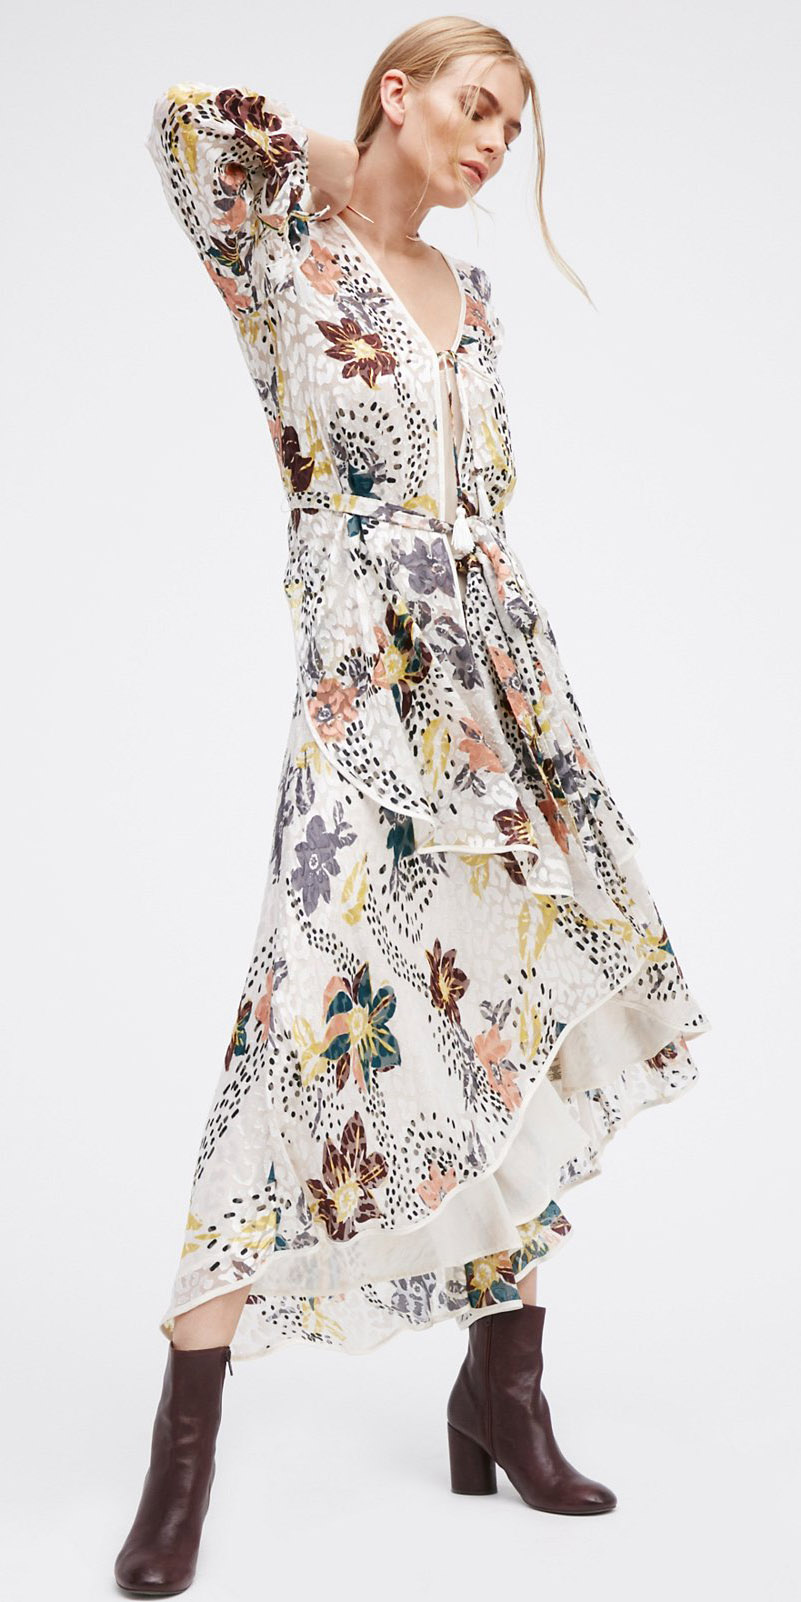 white-dress-maxi-floral-print-brown-shoe-booties-fall-winter-blonde-lunch.jpg